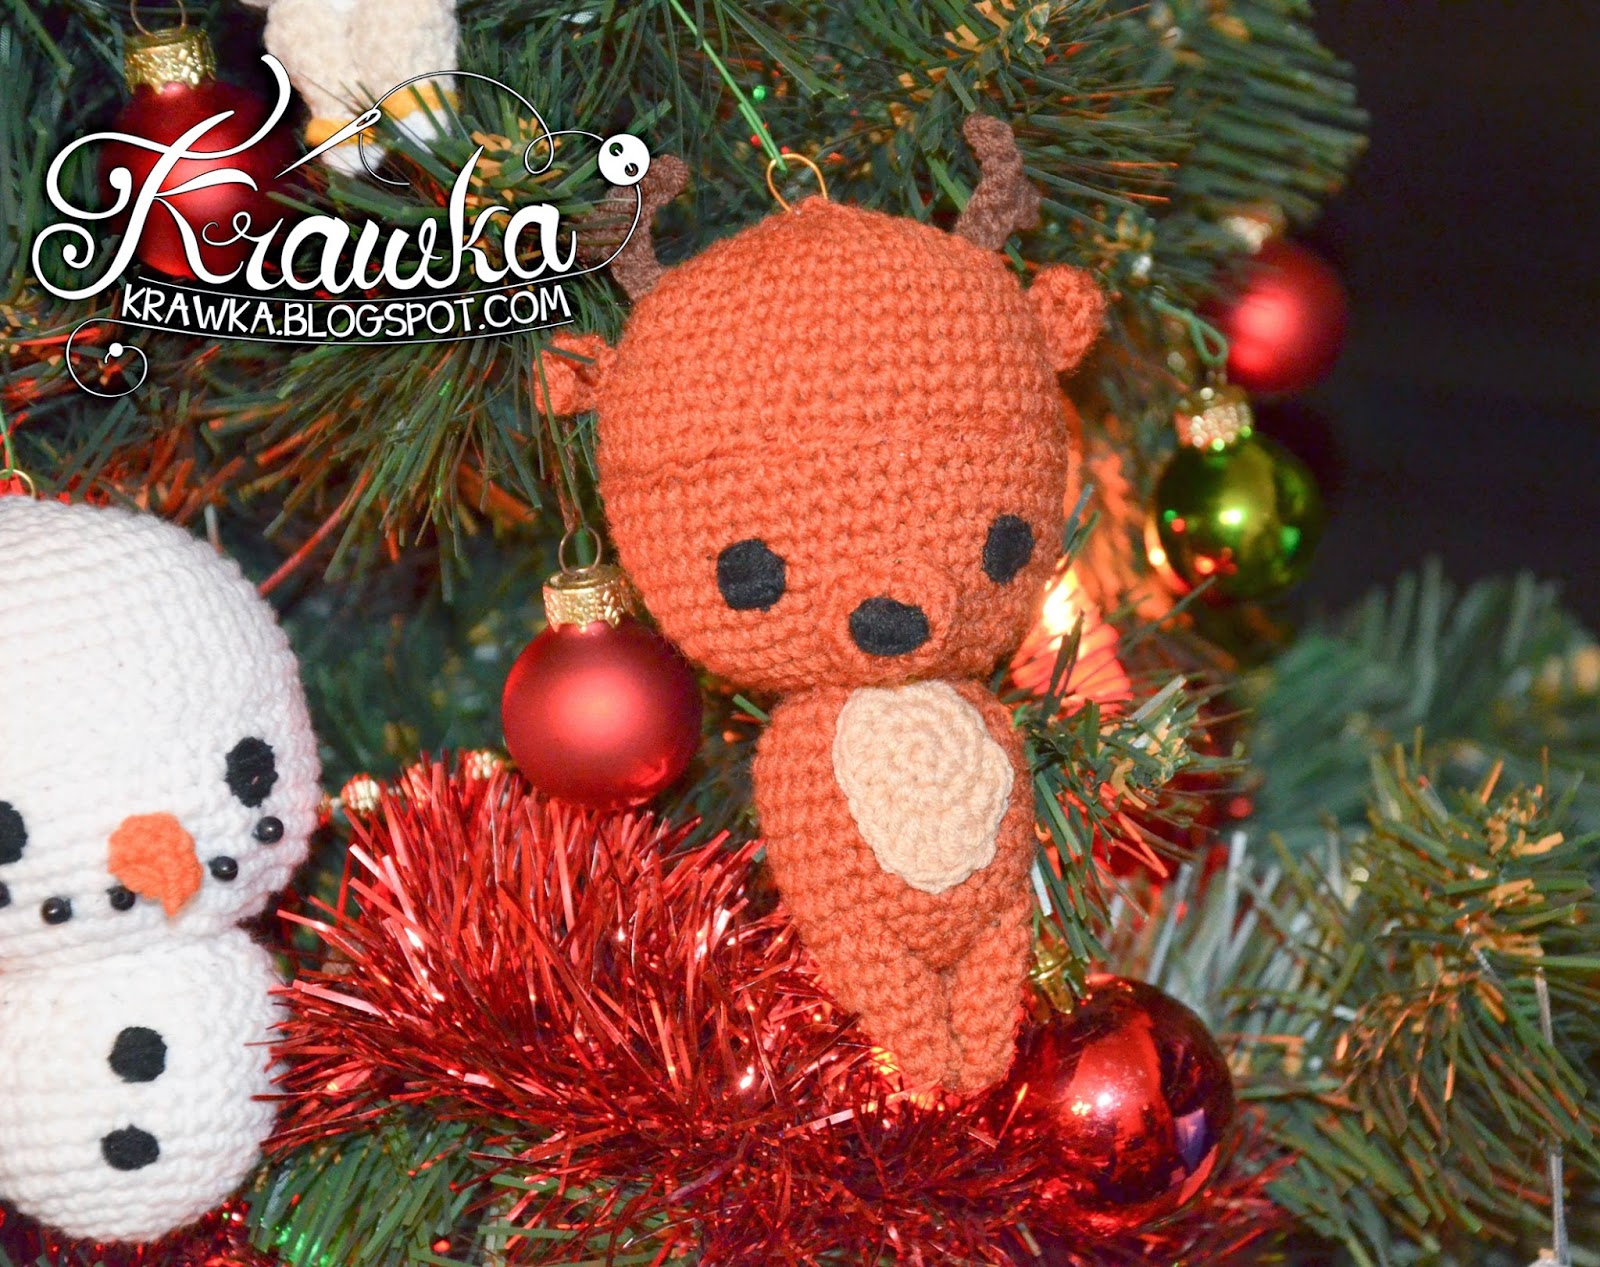 Krawka: Reindeer Christmas tree ornament crochet free pattern